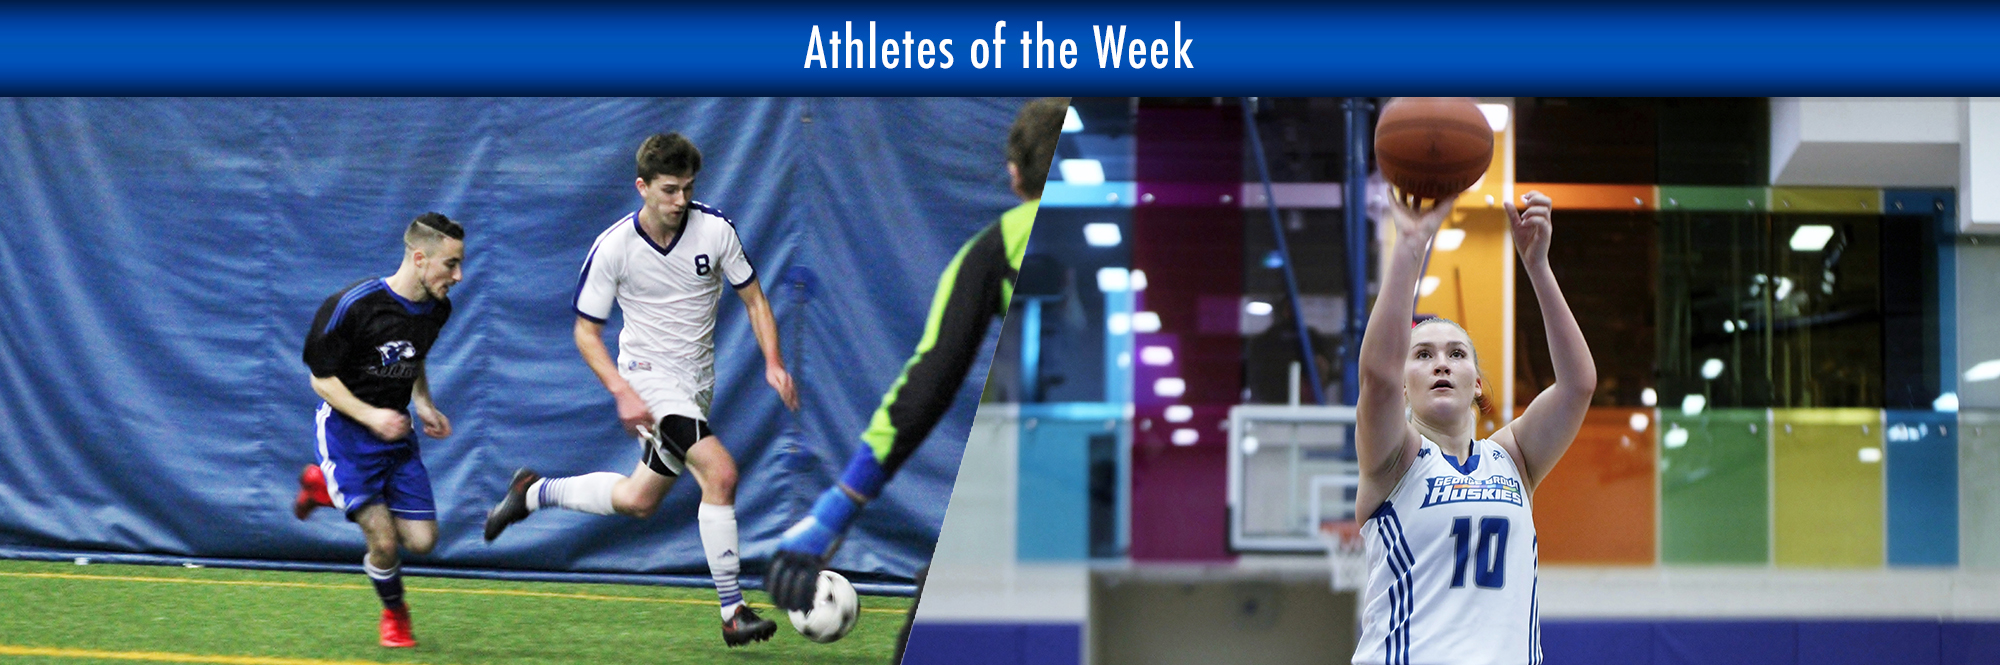 COCO SAUVE, MICHAEL WHELAN NAMED HUSKIES ATHLETES OF THE WEEK